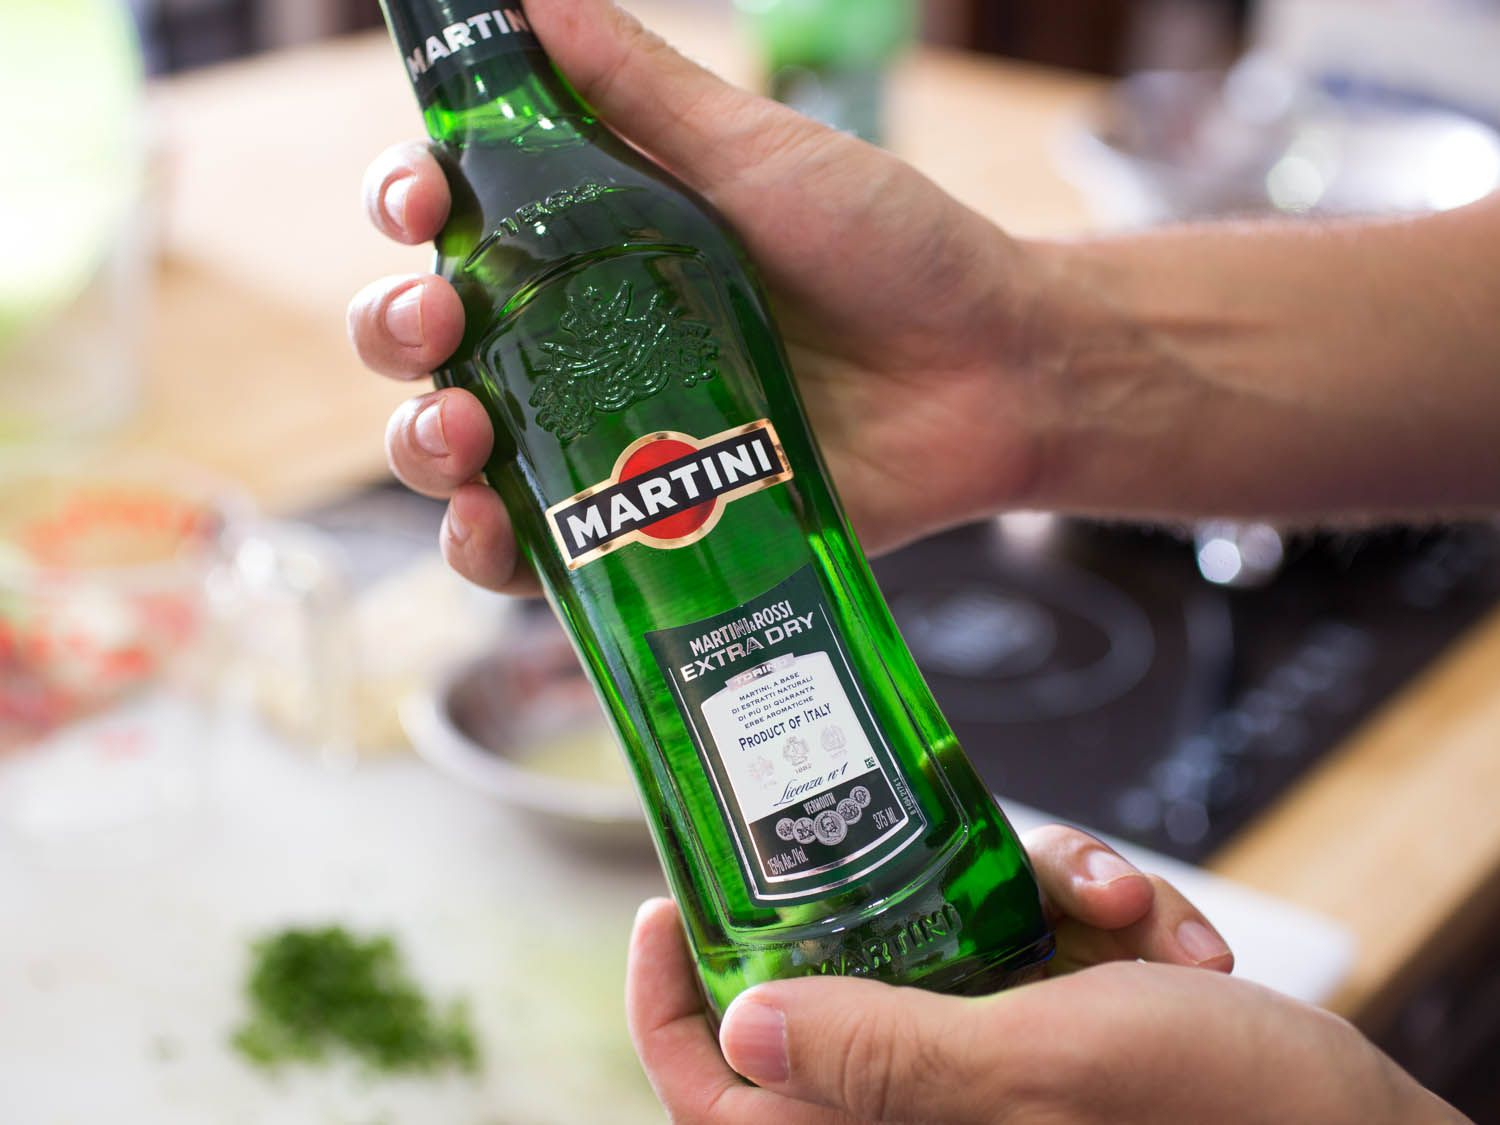 A hand holding up a green bottle of Martini & Rossi extra-dry vermouth